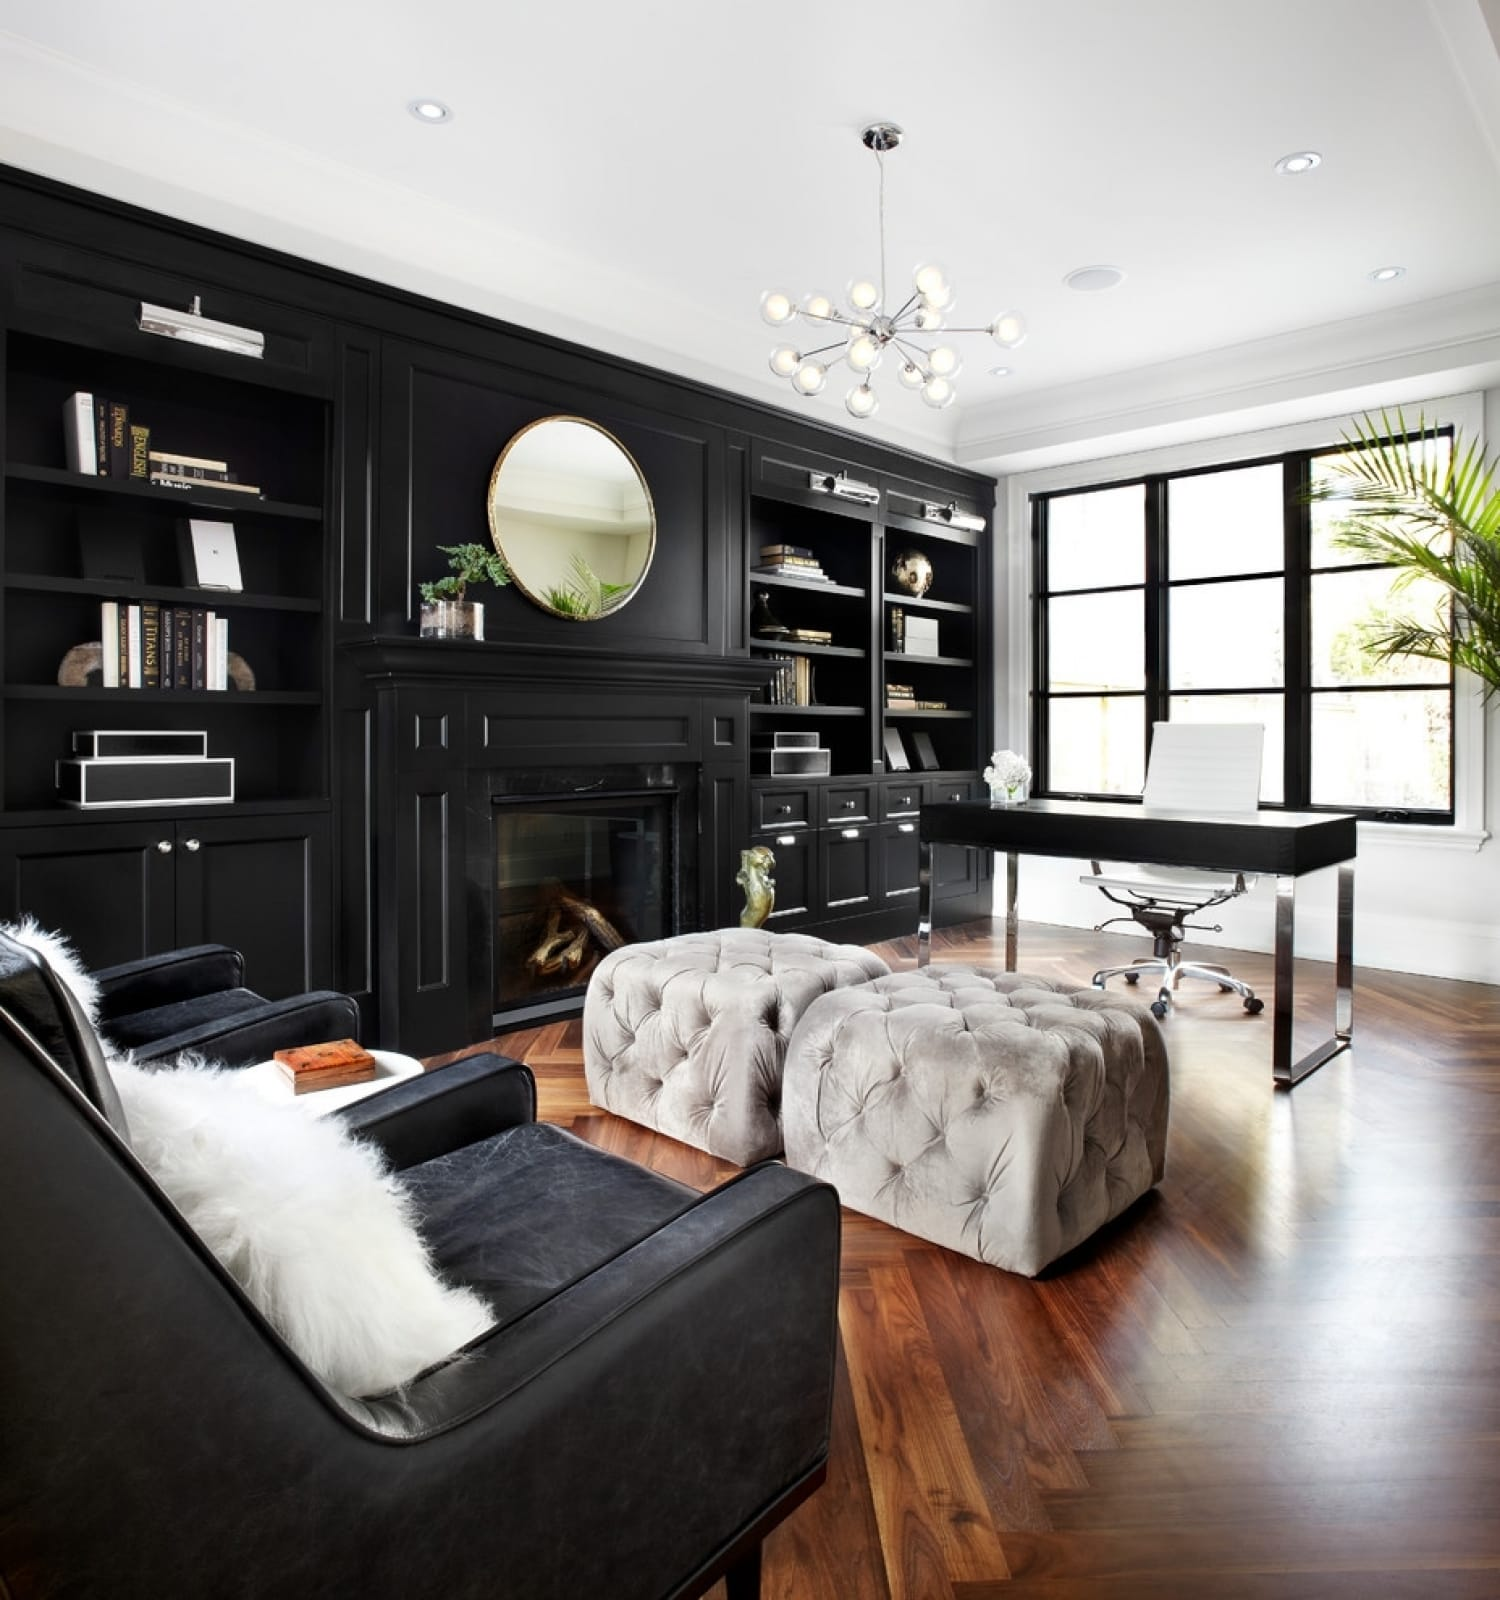 Black Furniture: Interior Design Photo Ideas. Black accent wall with the mirror is a bold designer`s solution for the noble classic styled interior with the touch of art deco